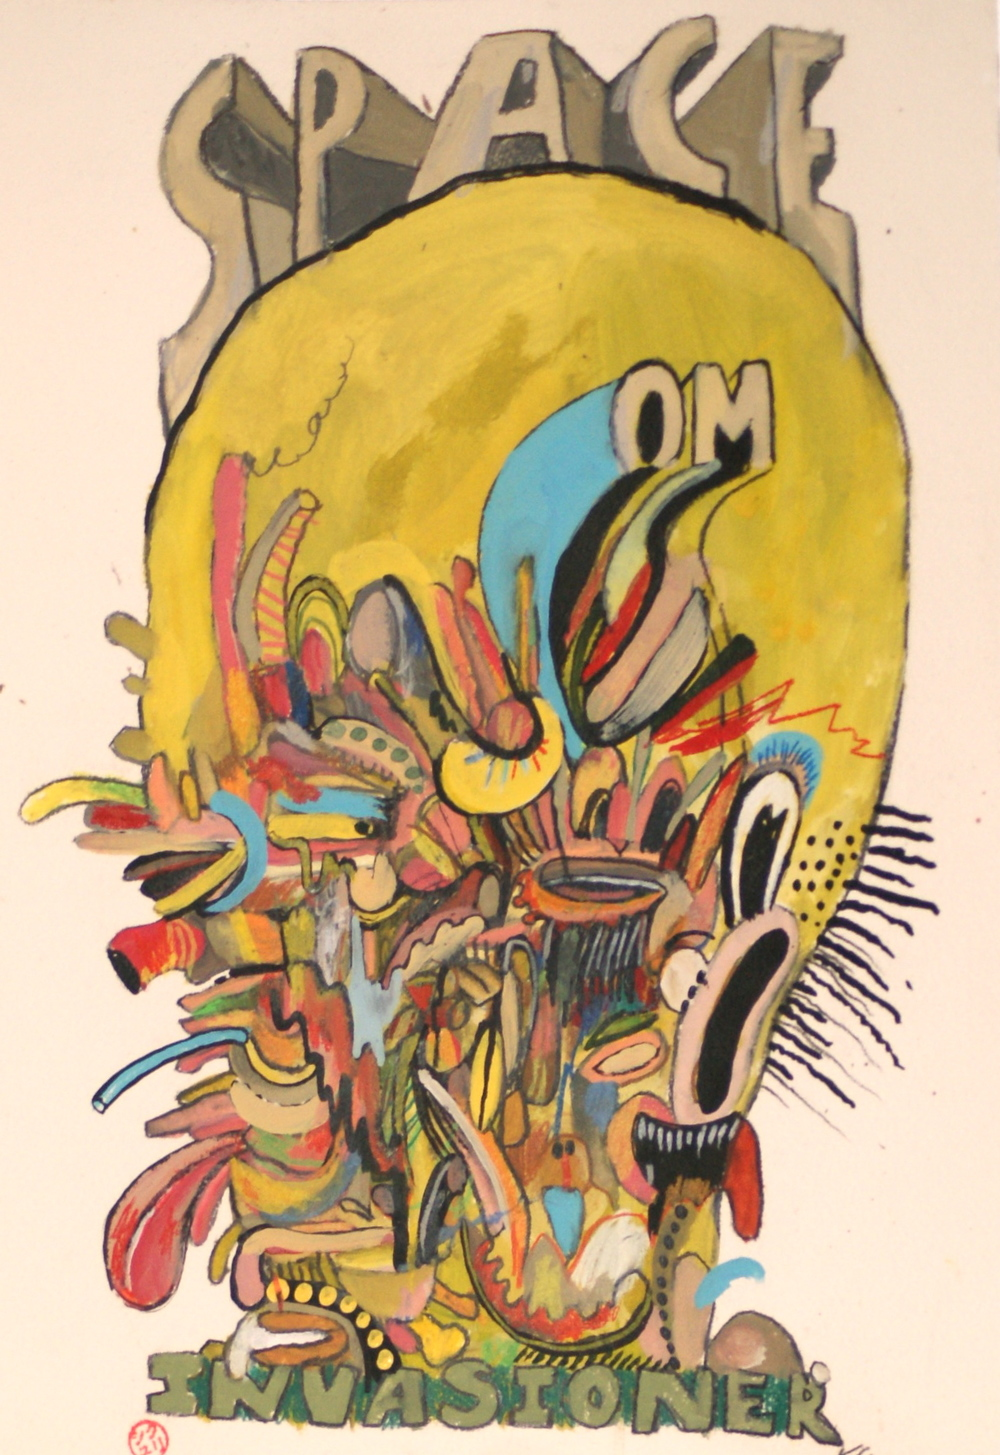 Space Om Invasioner , 2015   [private collection Brooklyn  , NY]   Acrylic on paper   16 x 12 in.